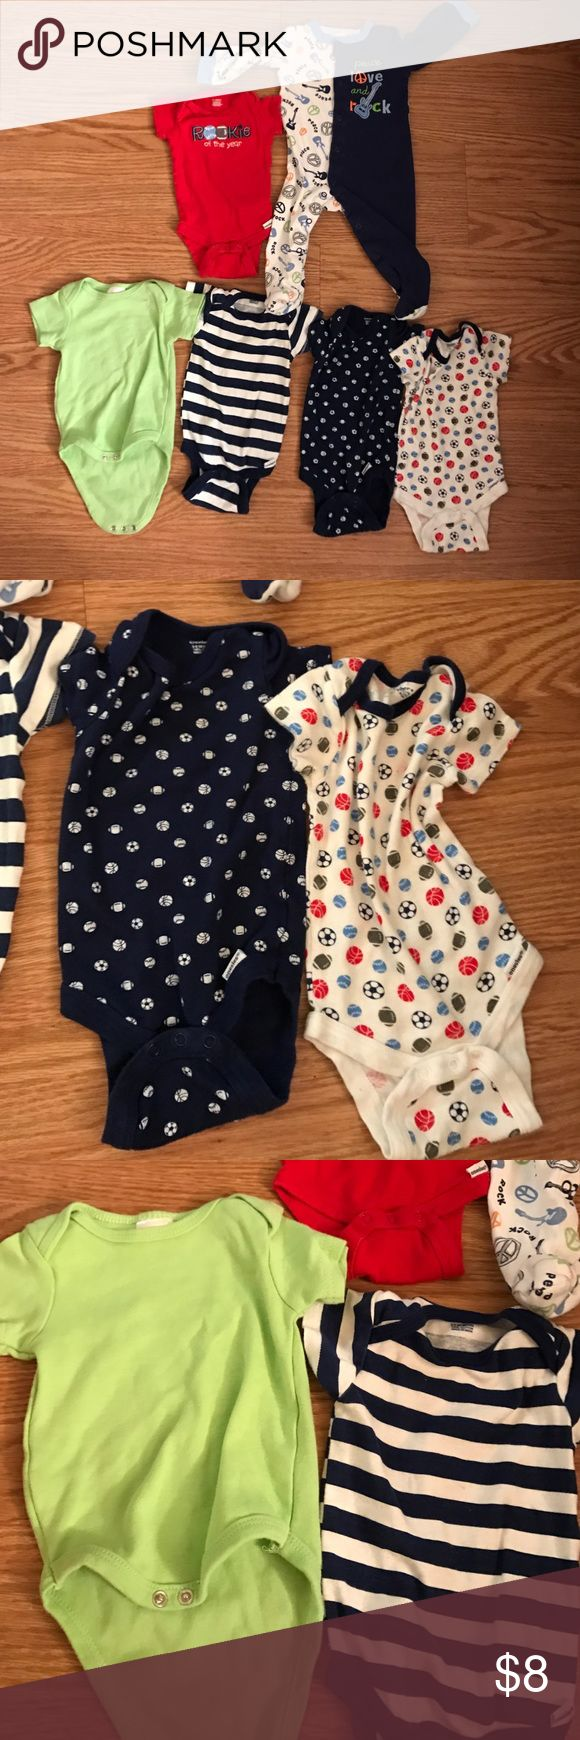 6 piece lot of 3-6 month baby boy onesies 5 short sleeve onesies and one long sleeve footie pajamas. Various brands.  No rips or stains but some have been used more than others. check out my other baby listings as well.My PRICE IS FIRM on all items $10 and under so no offers on this unless you bundle to receive a discount. gerber One Pieces Bodysuits